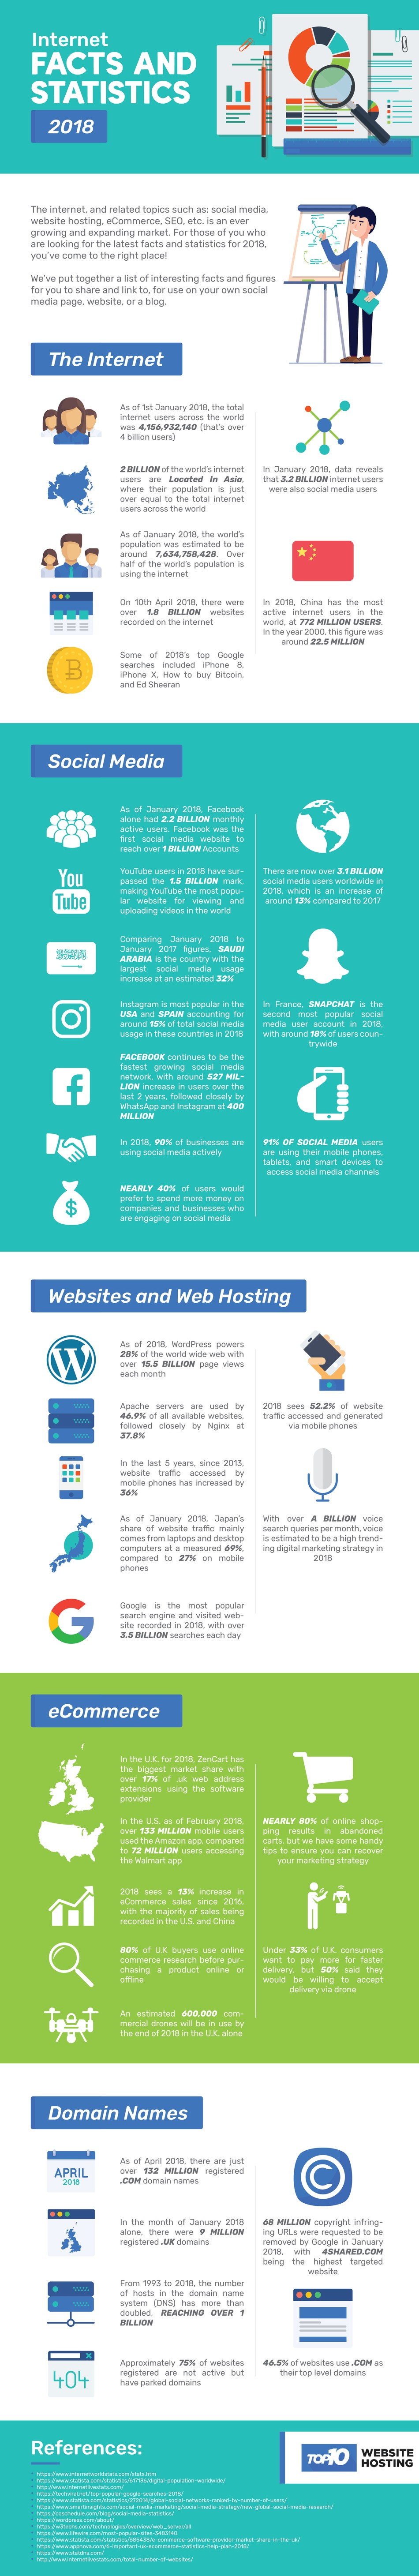 Internet Facts and Statistics 2018 by Top 10 Website Hosting